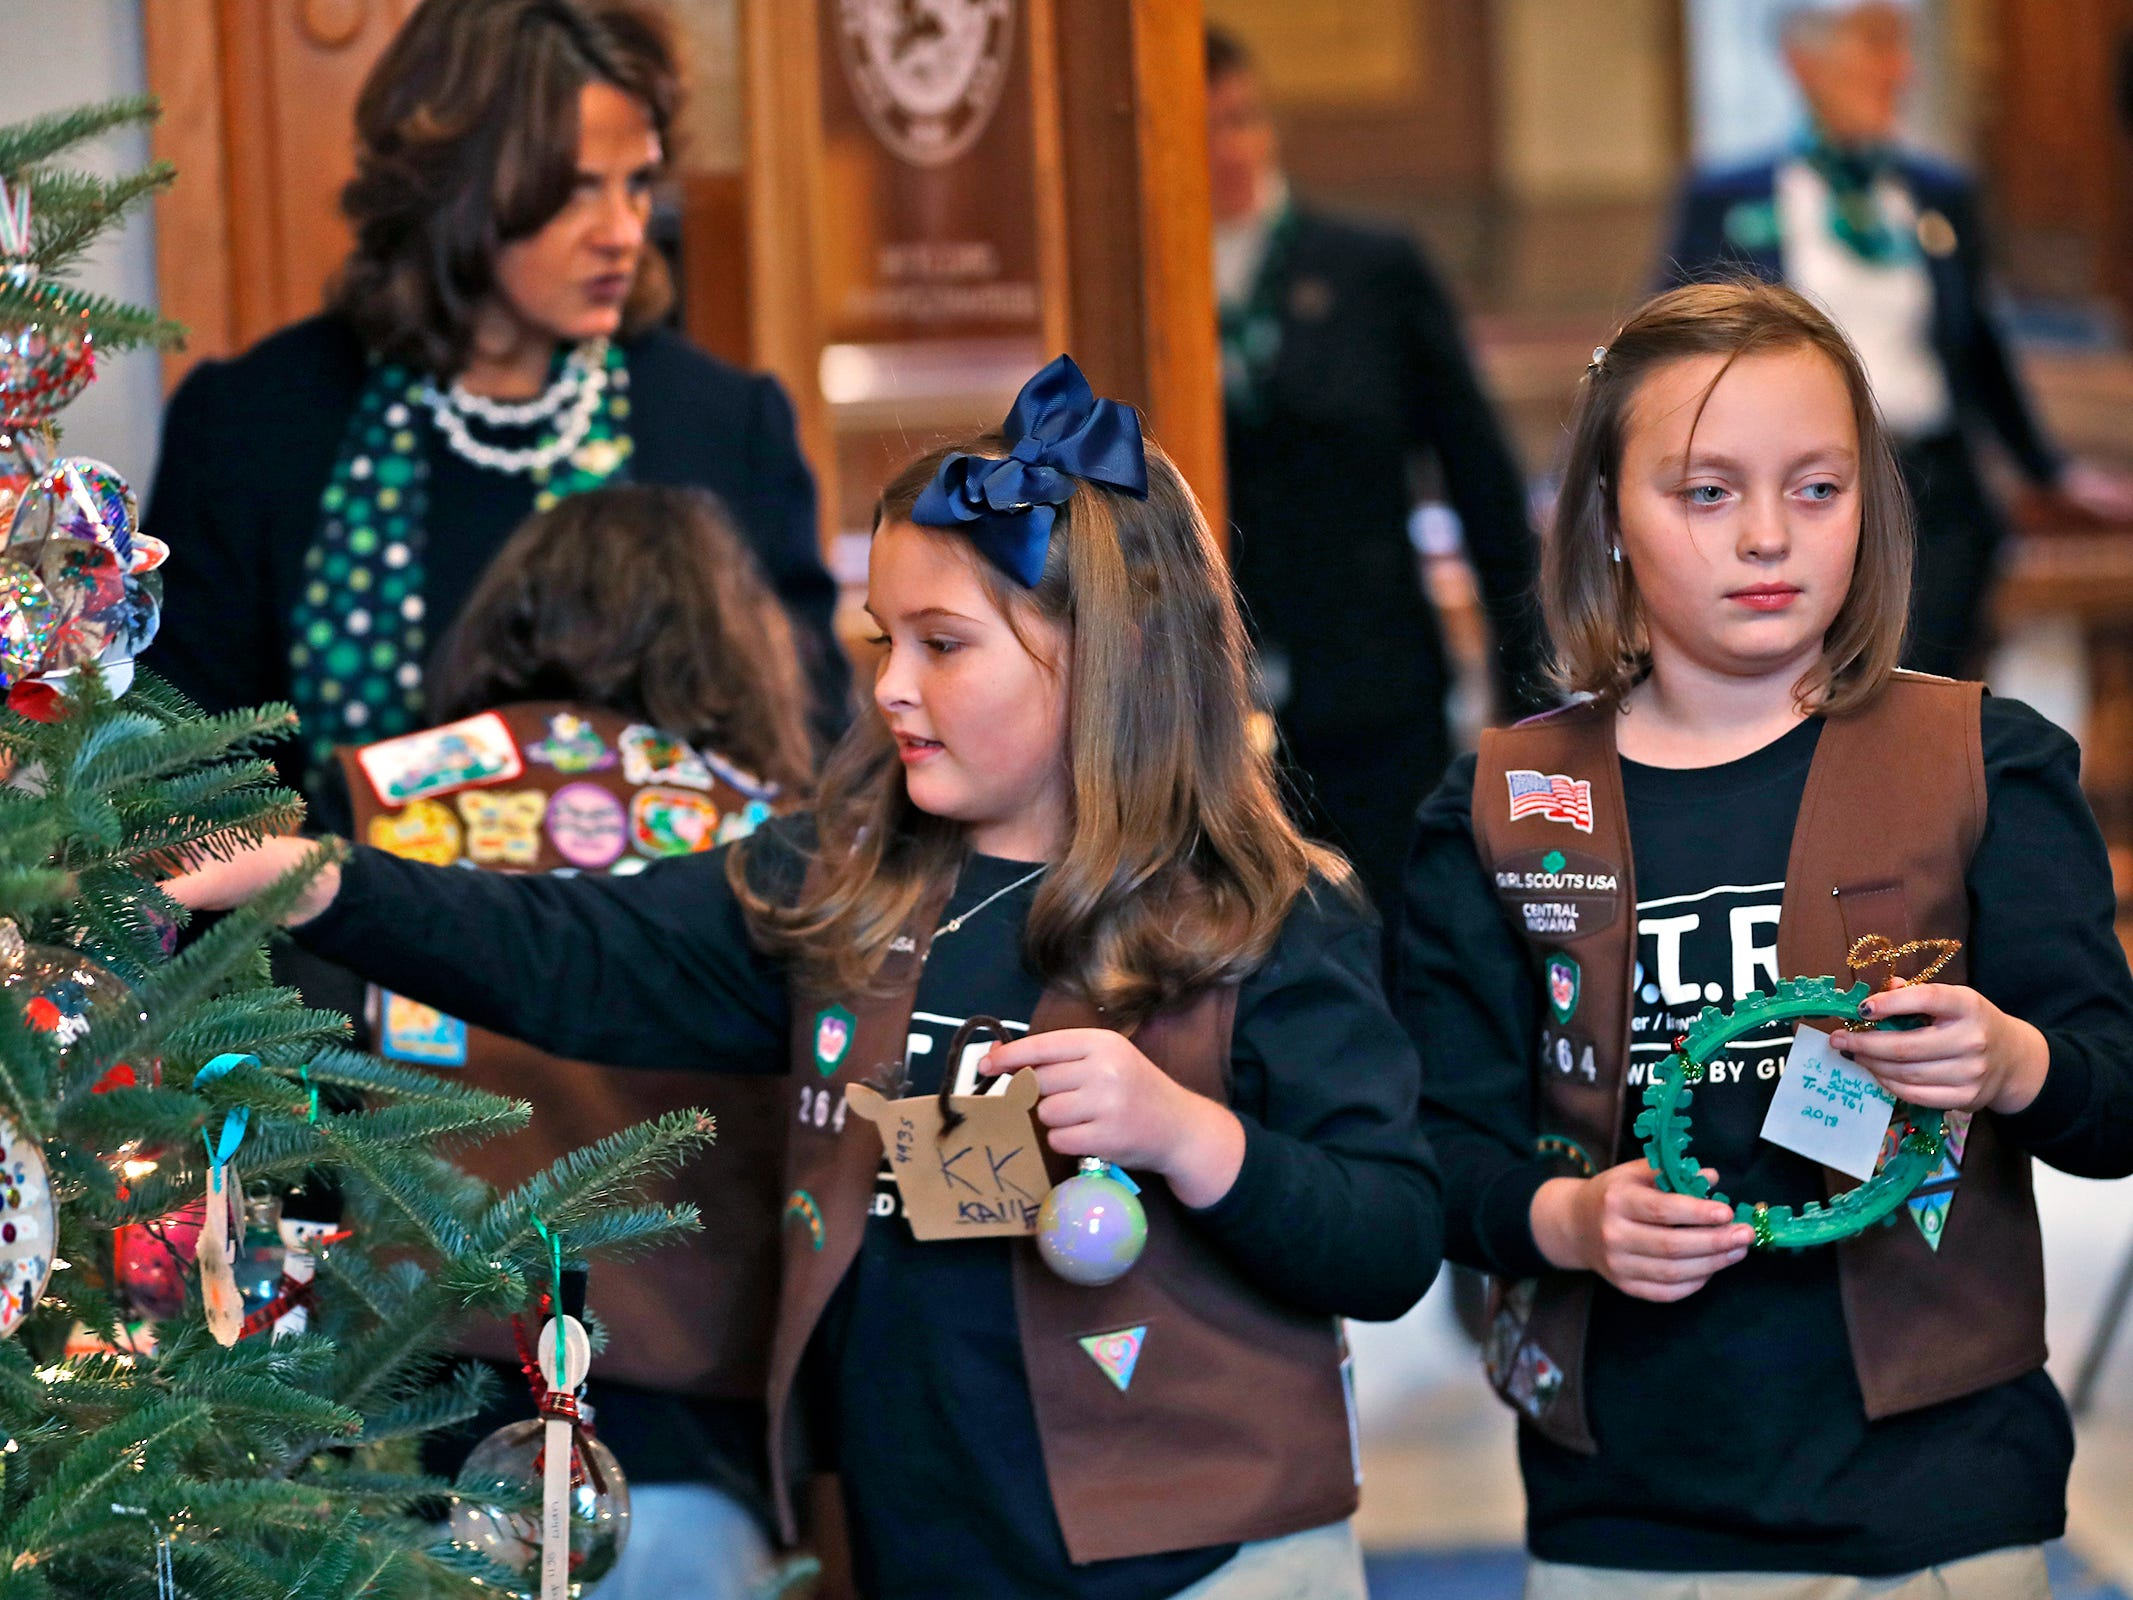 Brownies Katie Callahan and Colette Pardo join Lieutenant Governor Suzanne Crouch to decorate her Indiana Statehouse tree for the holidays, Wednesday, Dec. 5, 2018.  They used ornaments created by Girl Scouts from across Central Indiana for the tree.